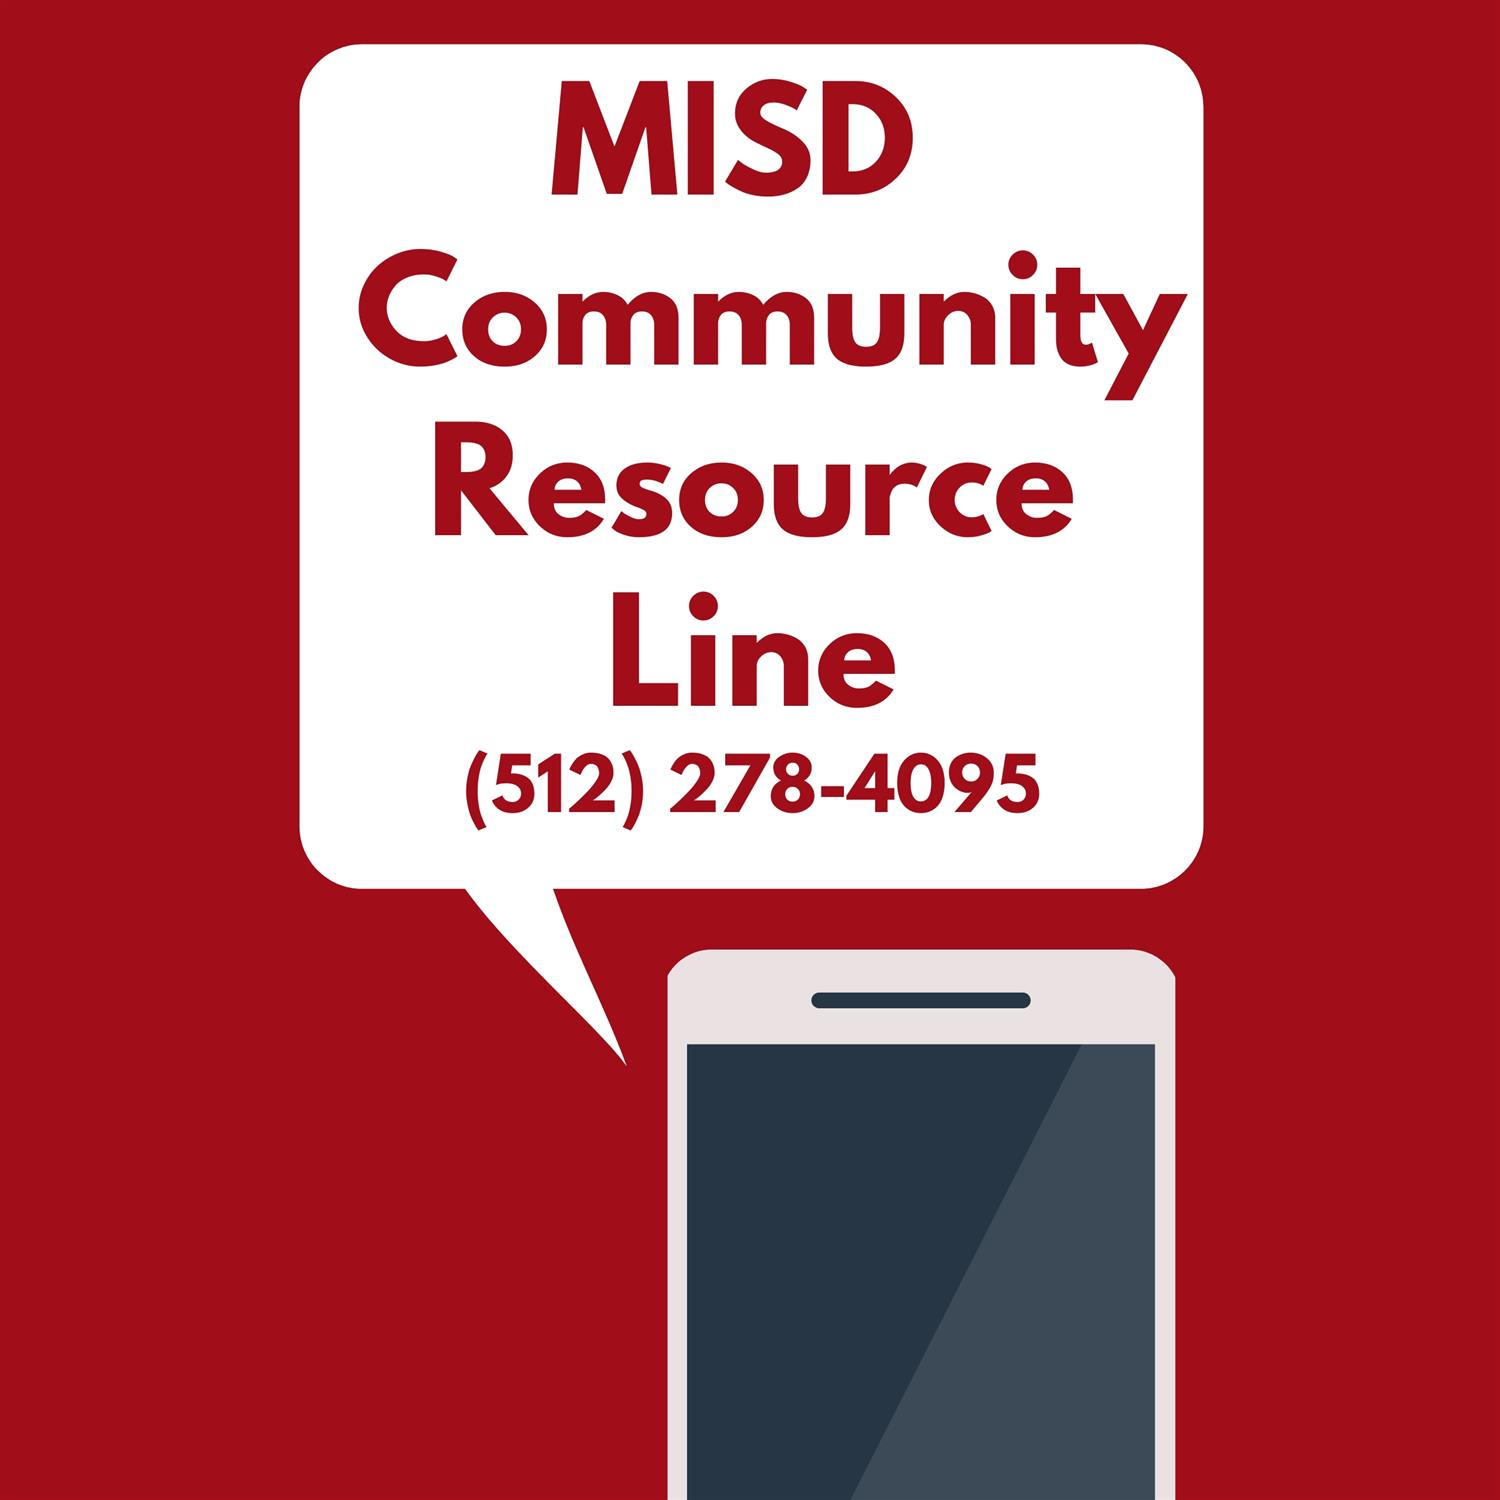 MISD  Community Resource Line